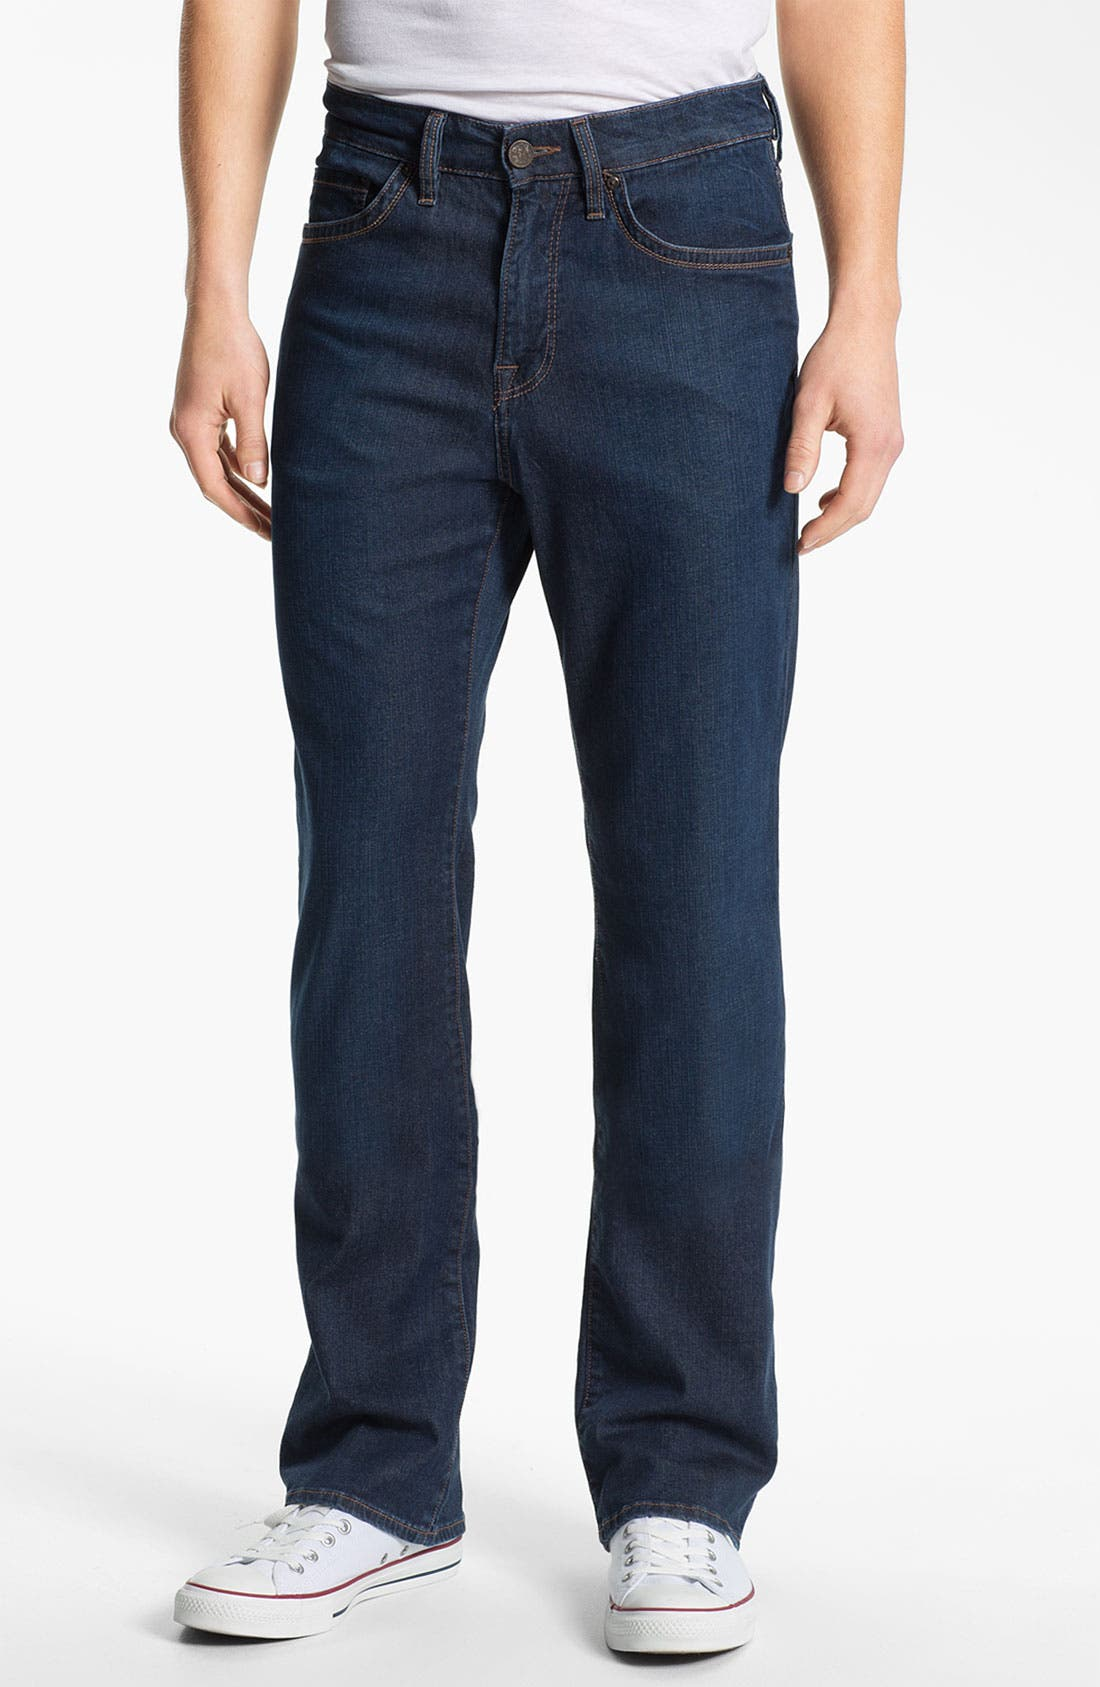 'Charisma' Classic Relaxed Fit Jeans,                         Main,                         color, Dark Cashmere Wash